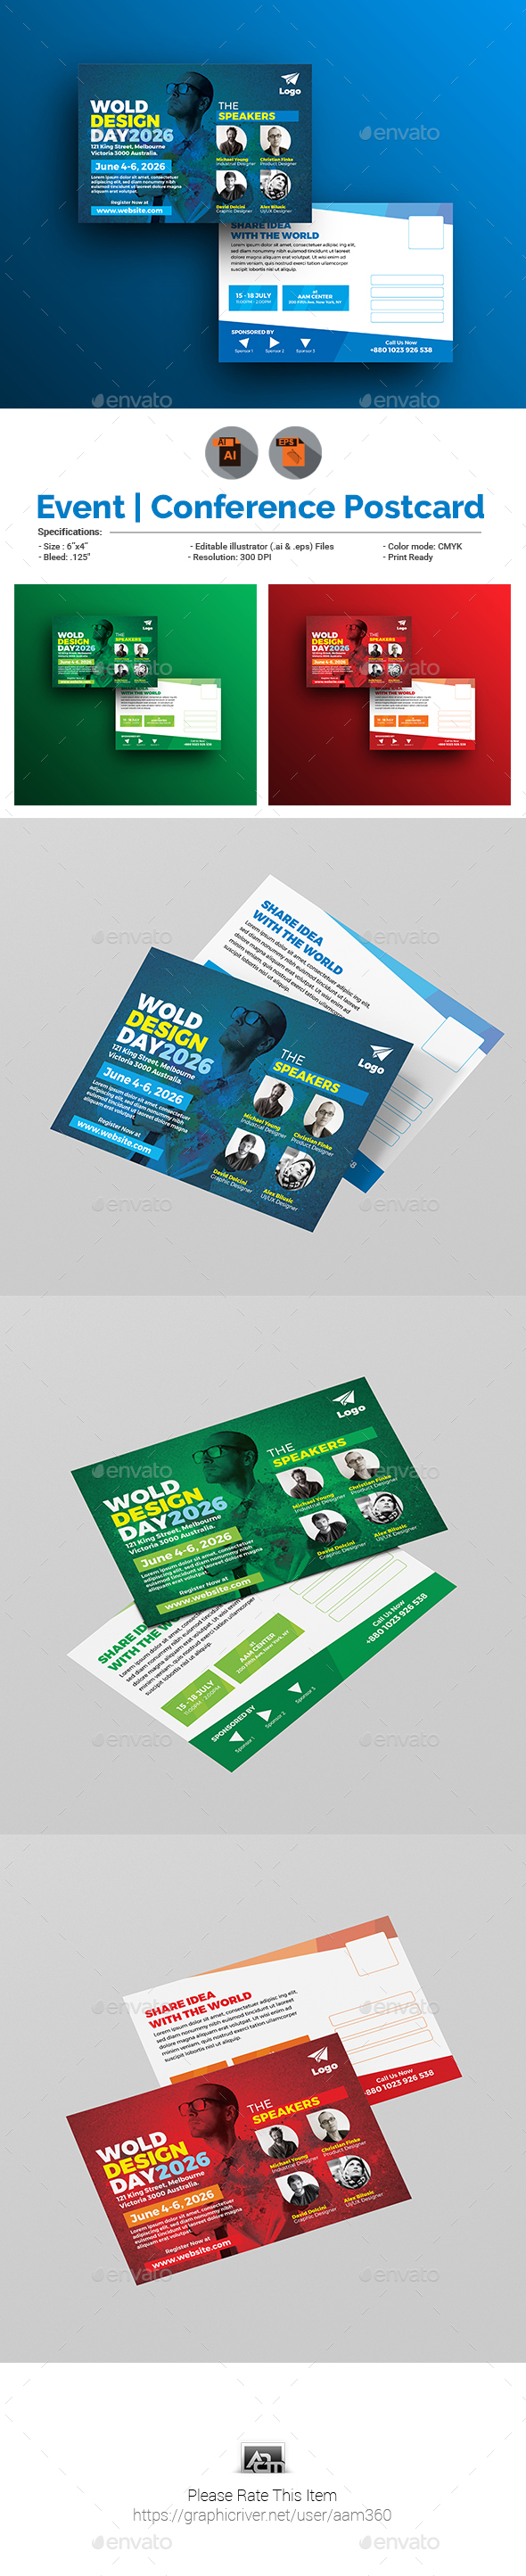 Conference Event Postcard Template By Aam GraphicRiver - Event postcard template